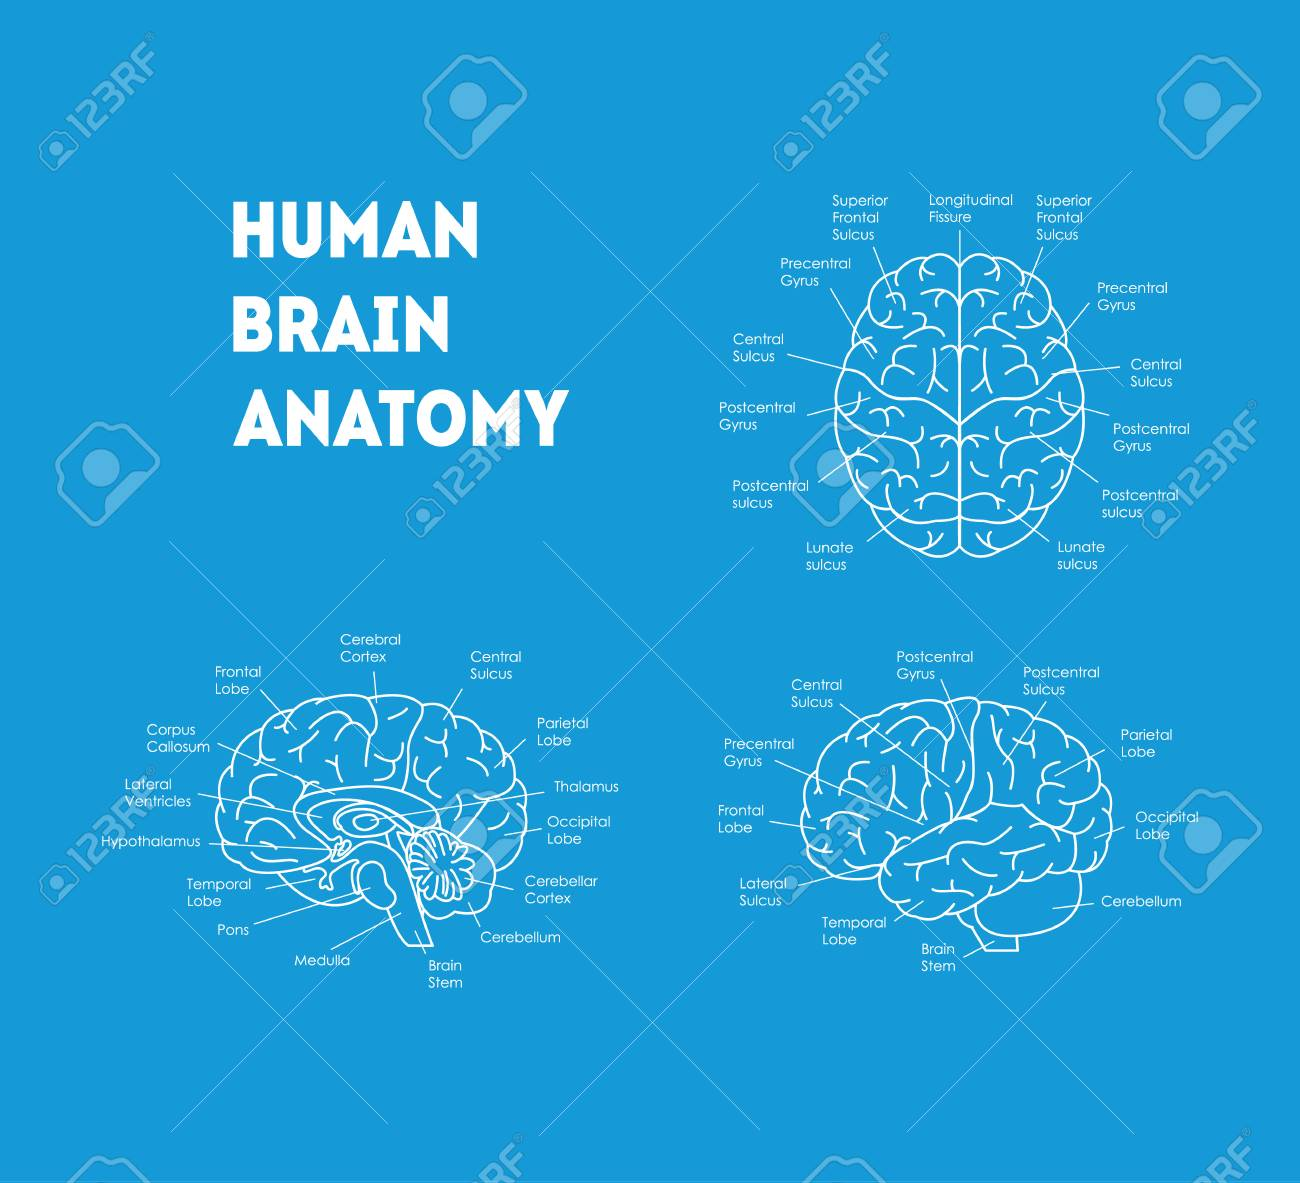 Human Brain Anatomy Card Poster. Royalty Free Cliparts, Vectors, And ...